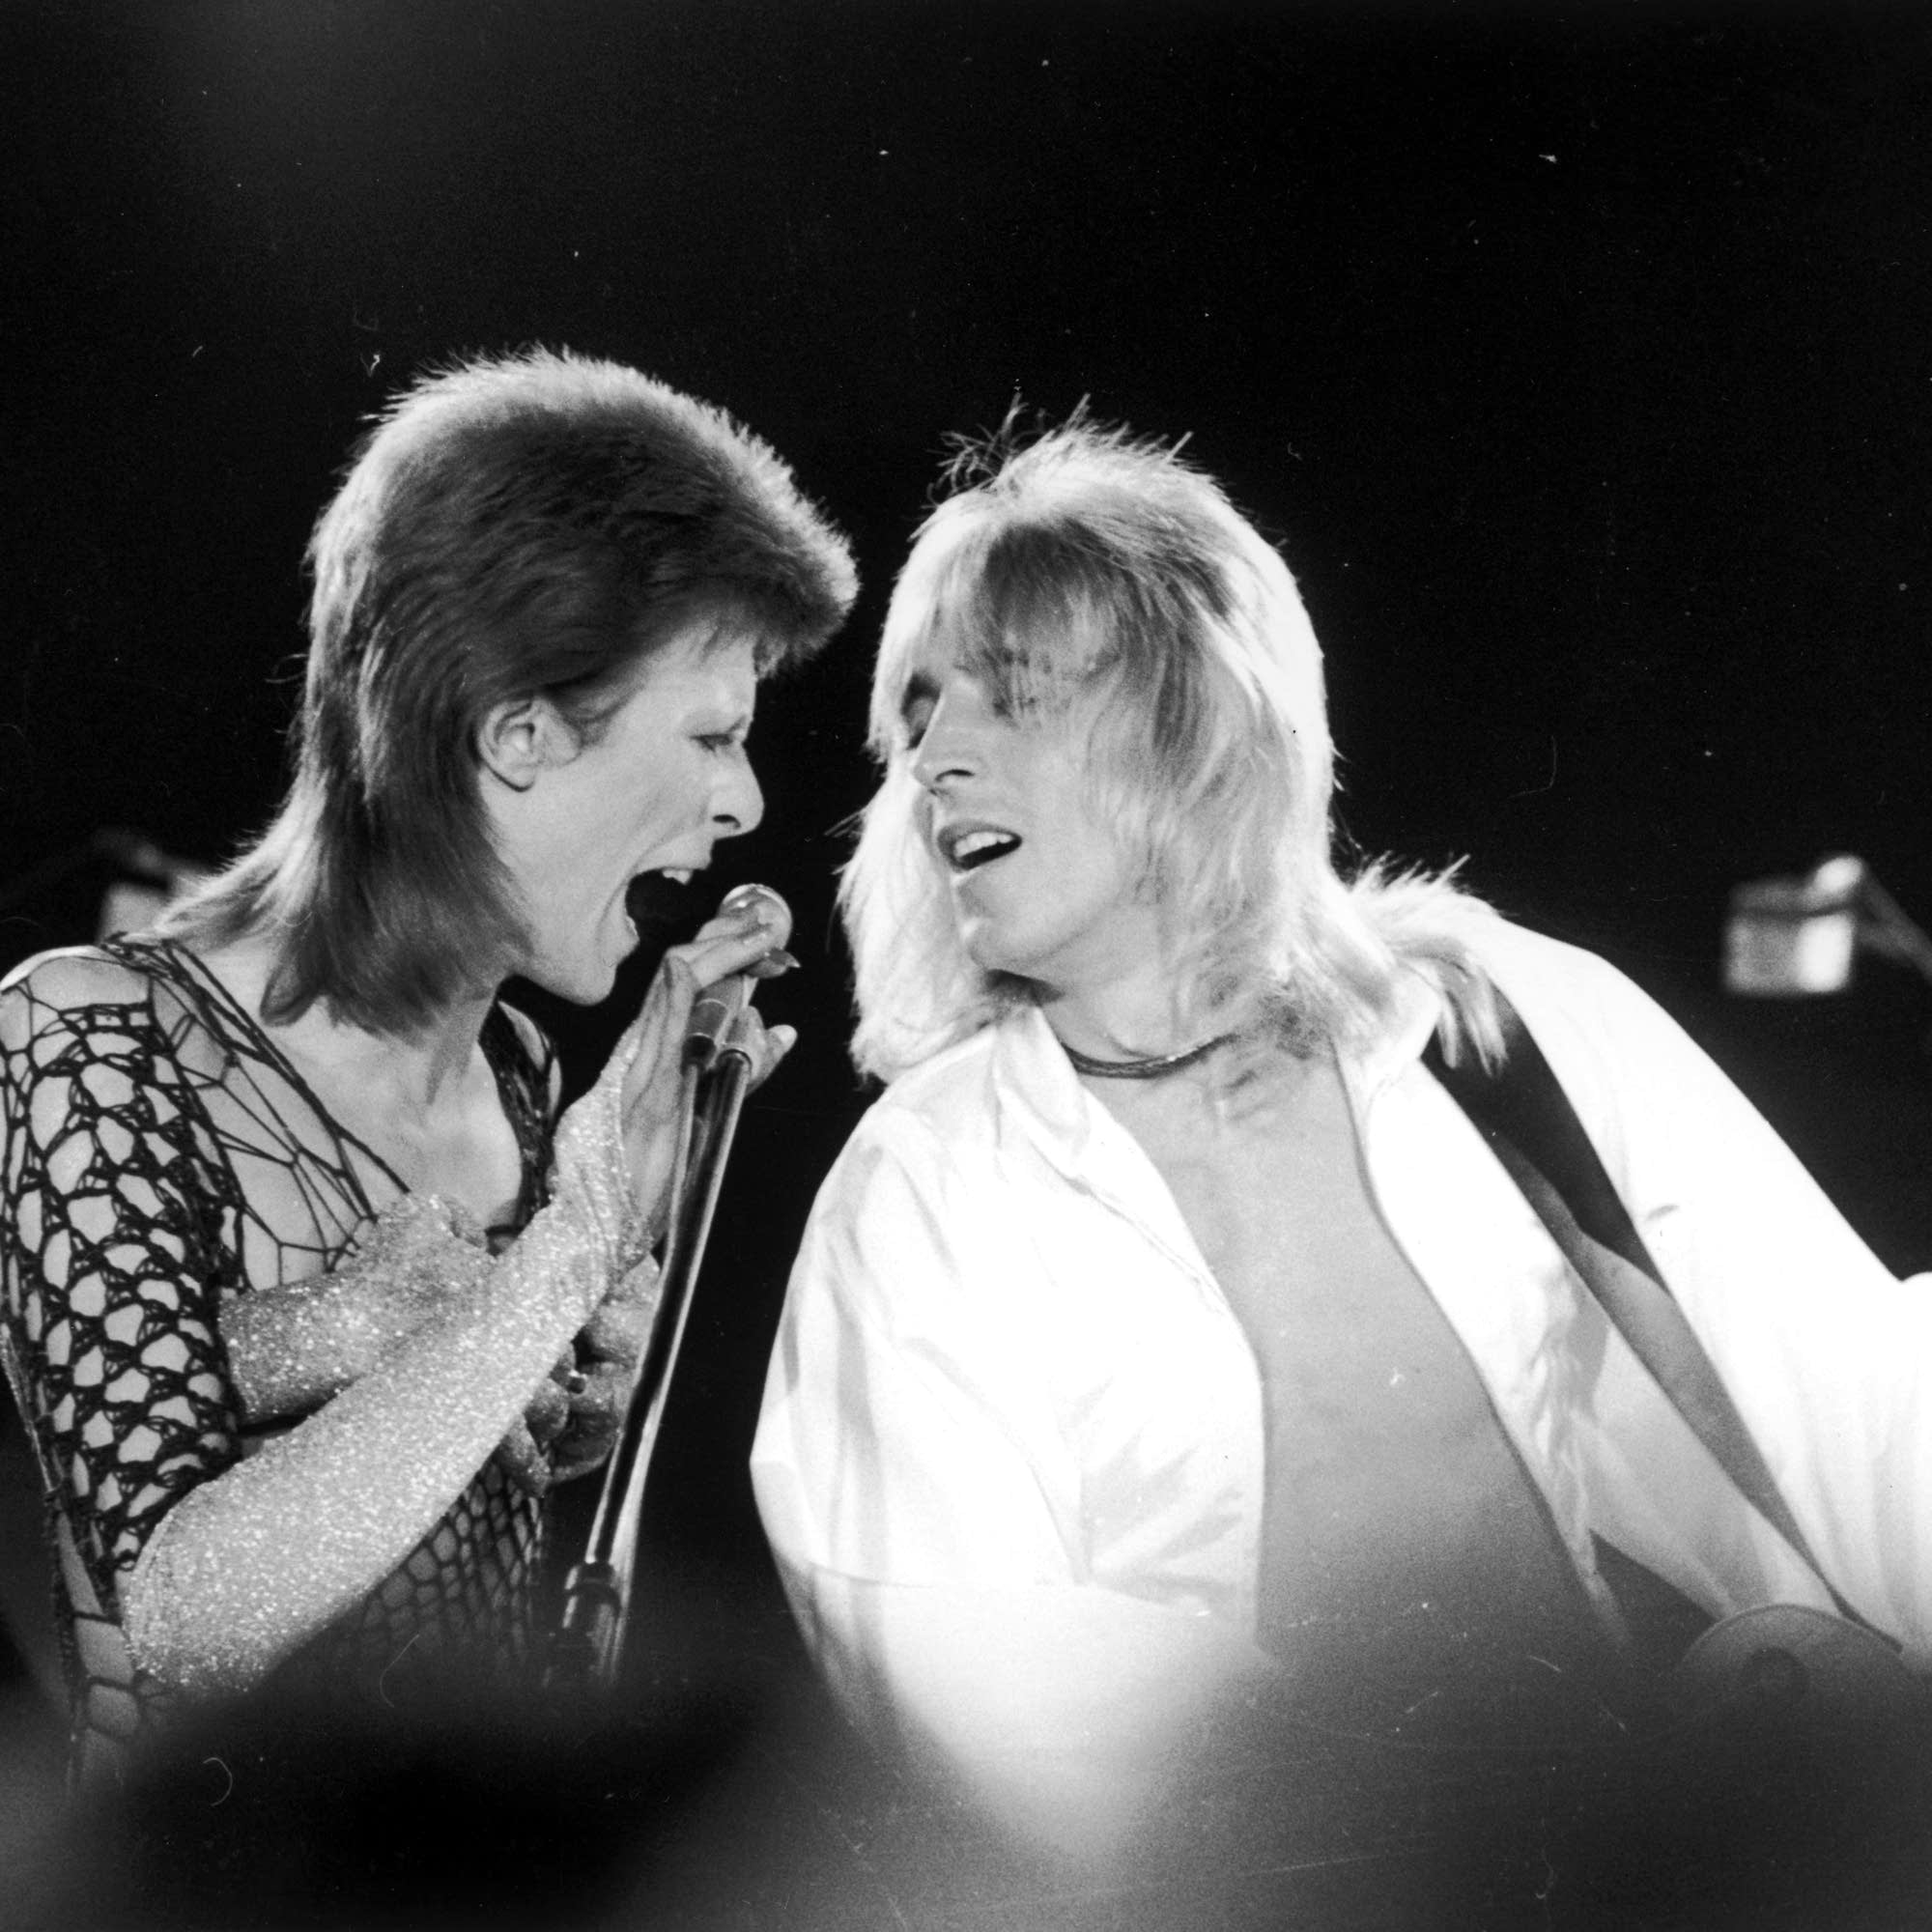 David Bowie and Mick Ronson in 1973